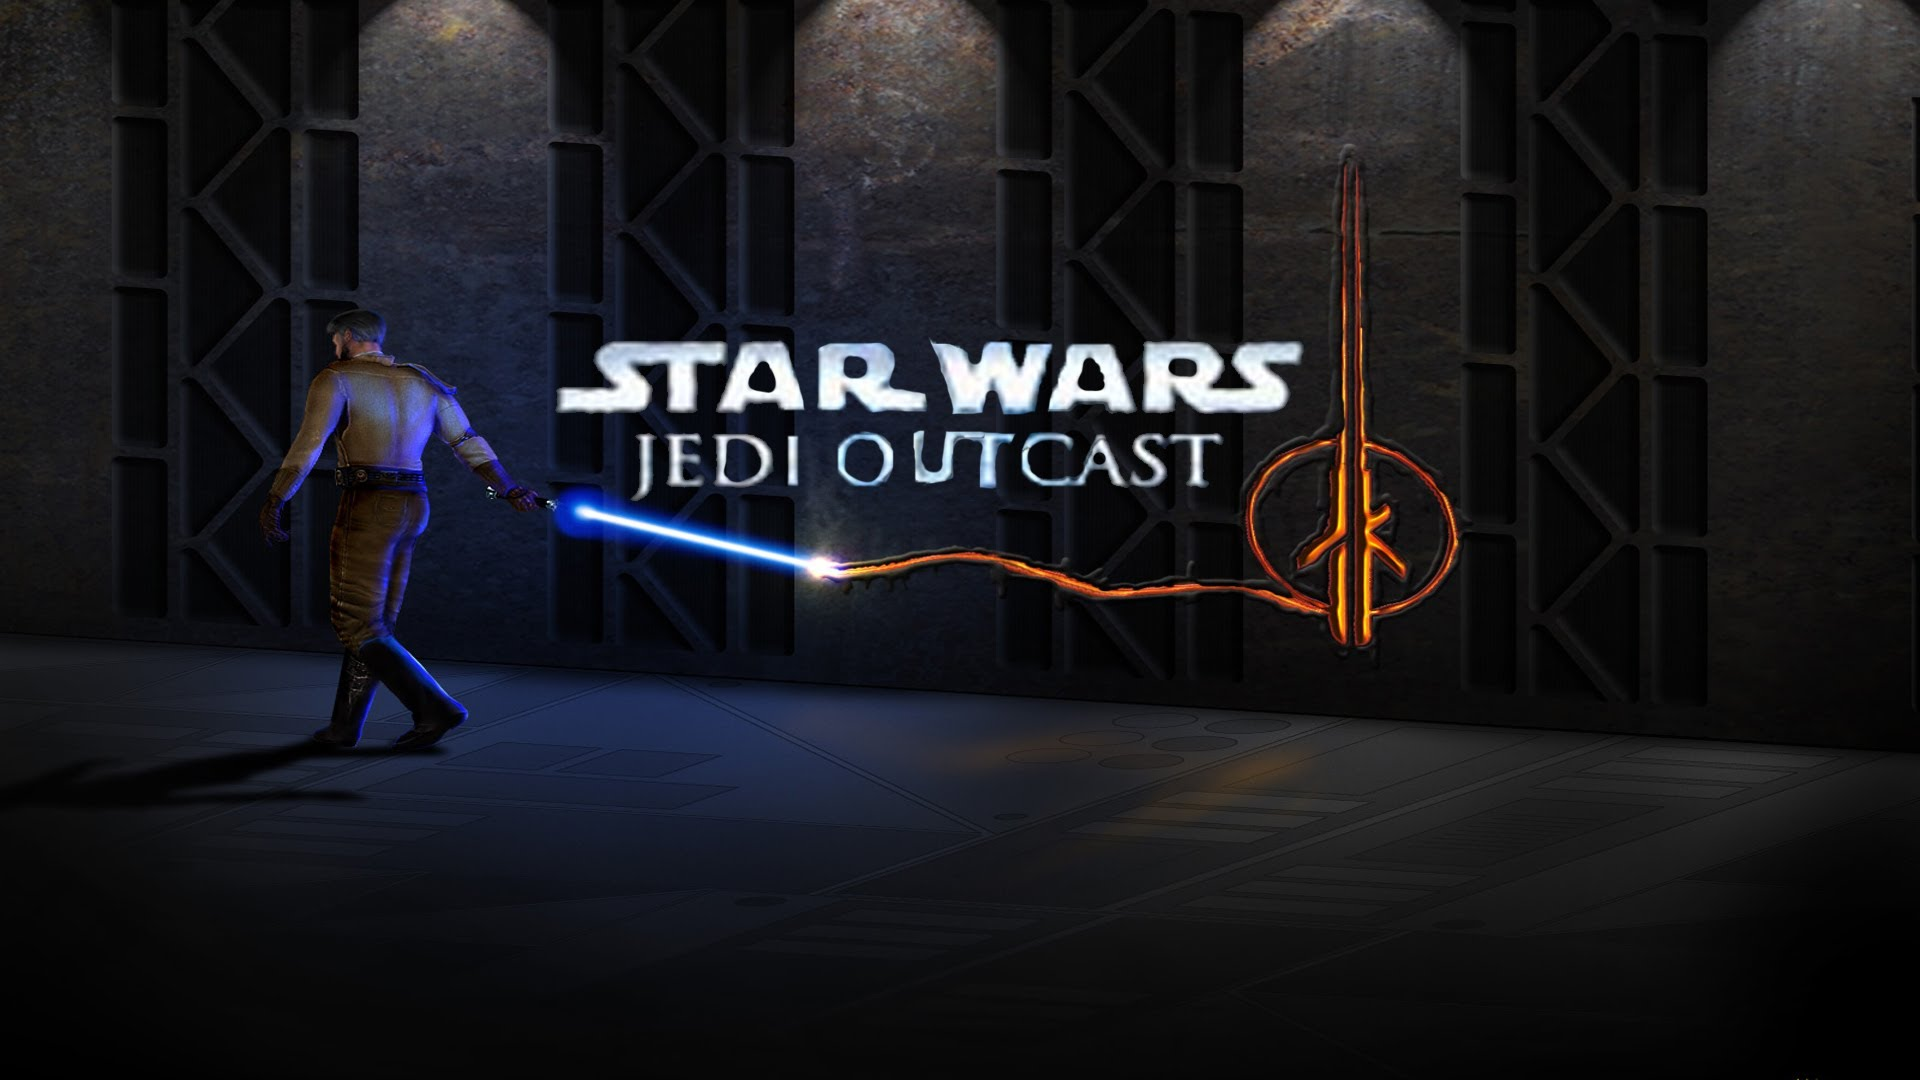 Star Wars Jedi Knight 2 Outcast